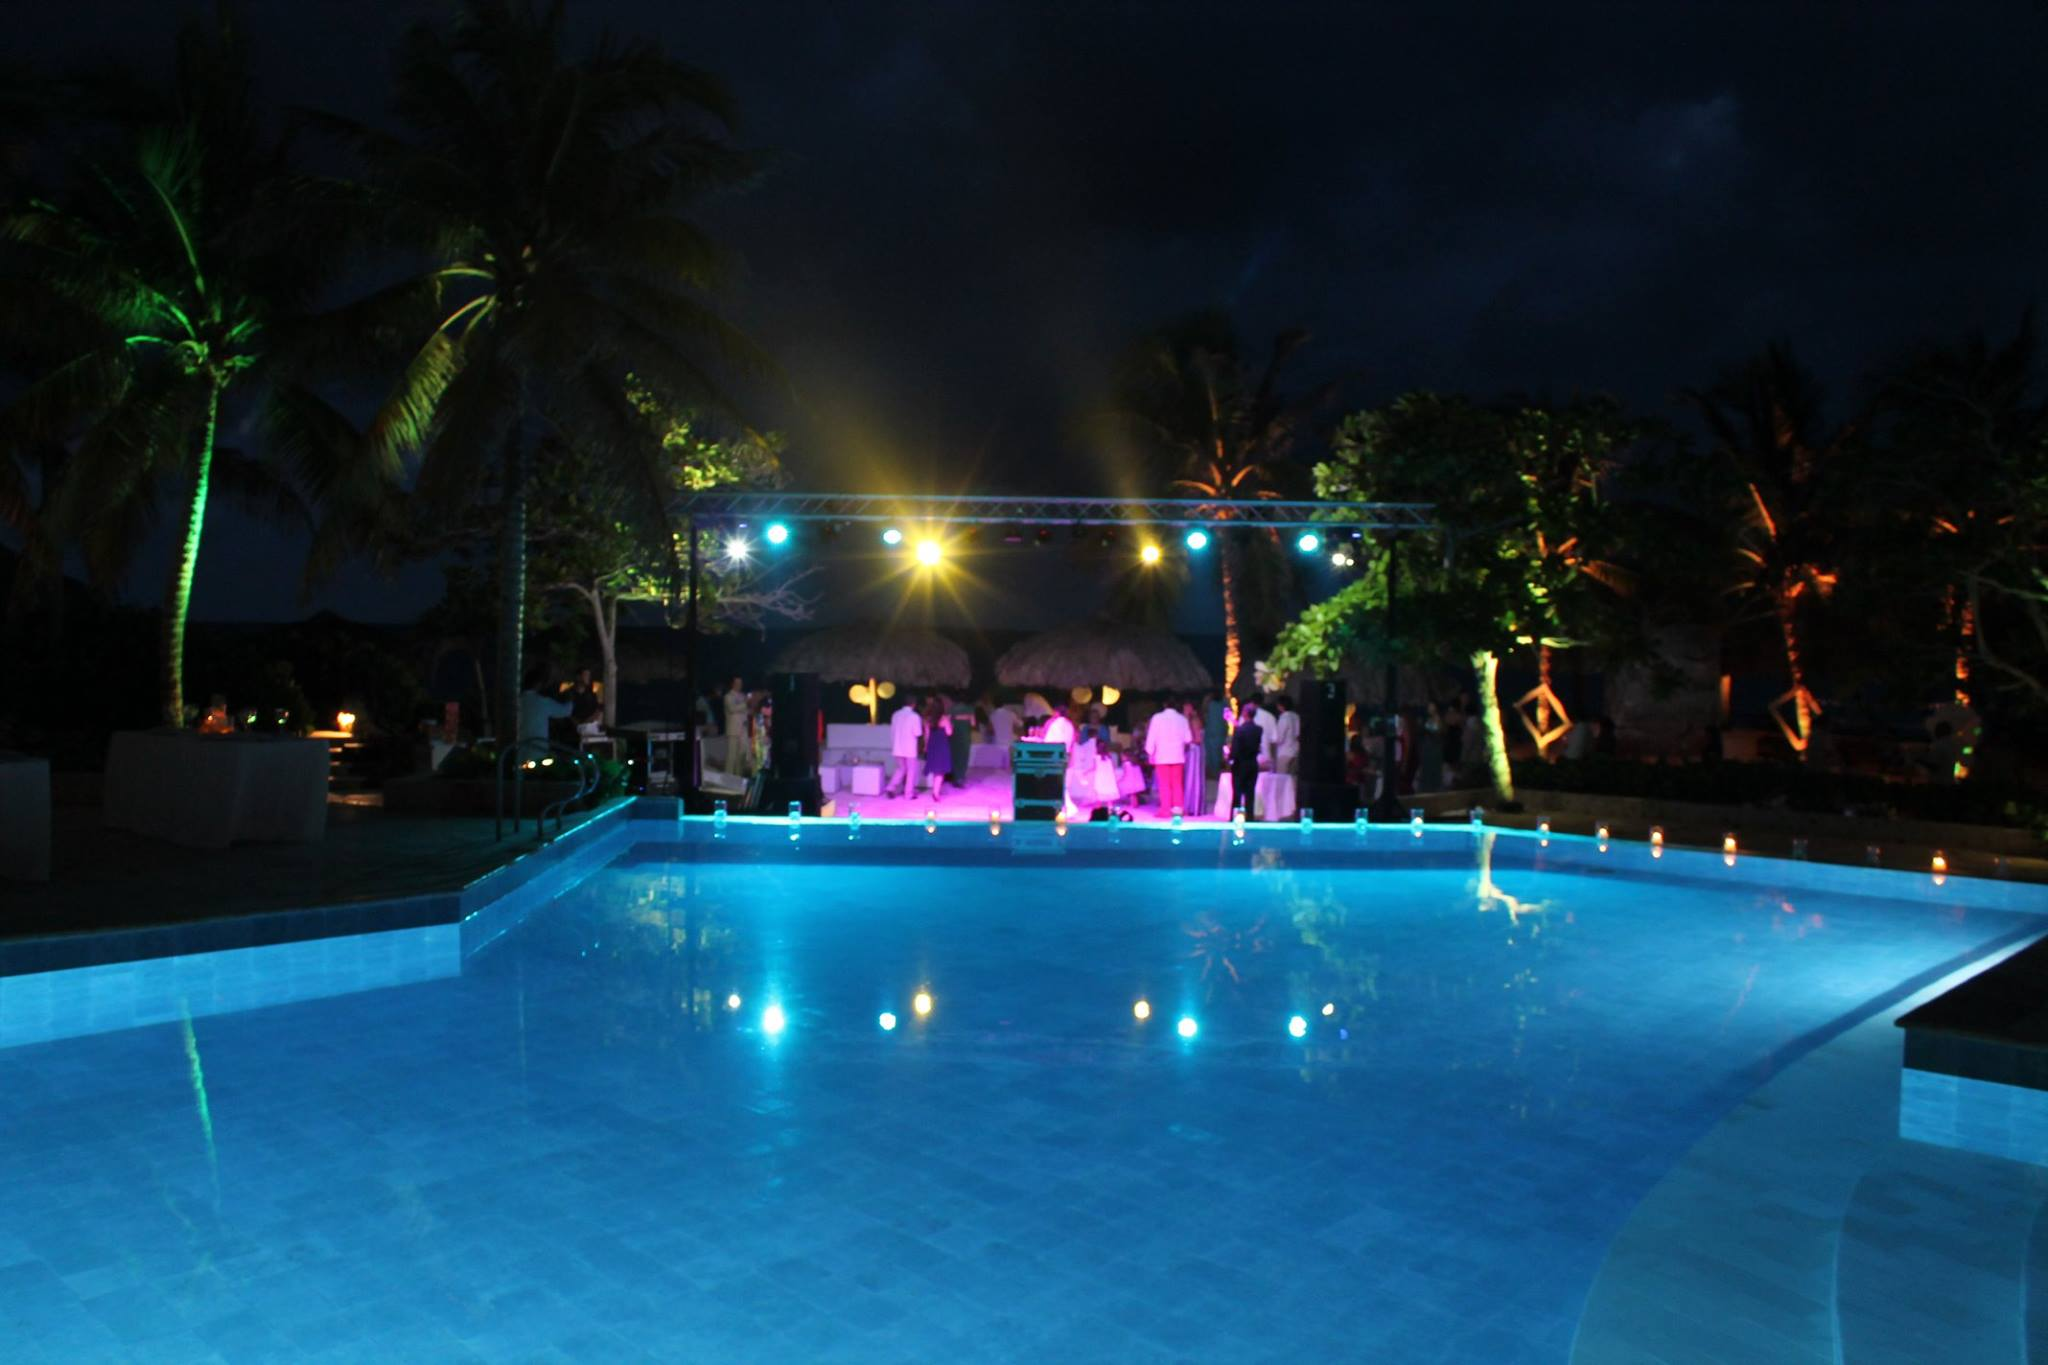 Outdoor event @ Punta Iguana (Colombia)